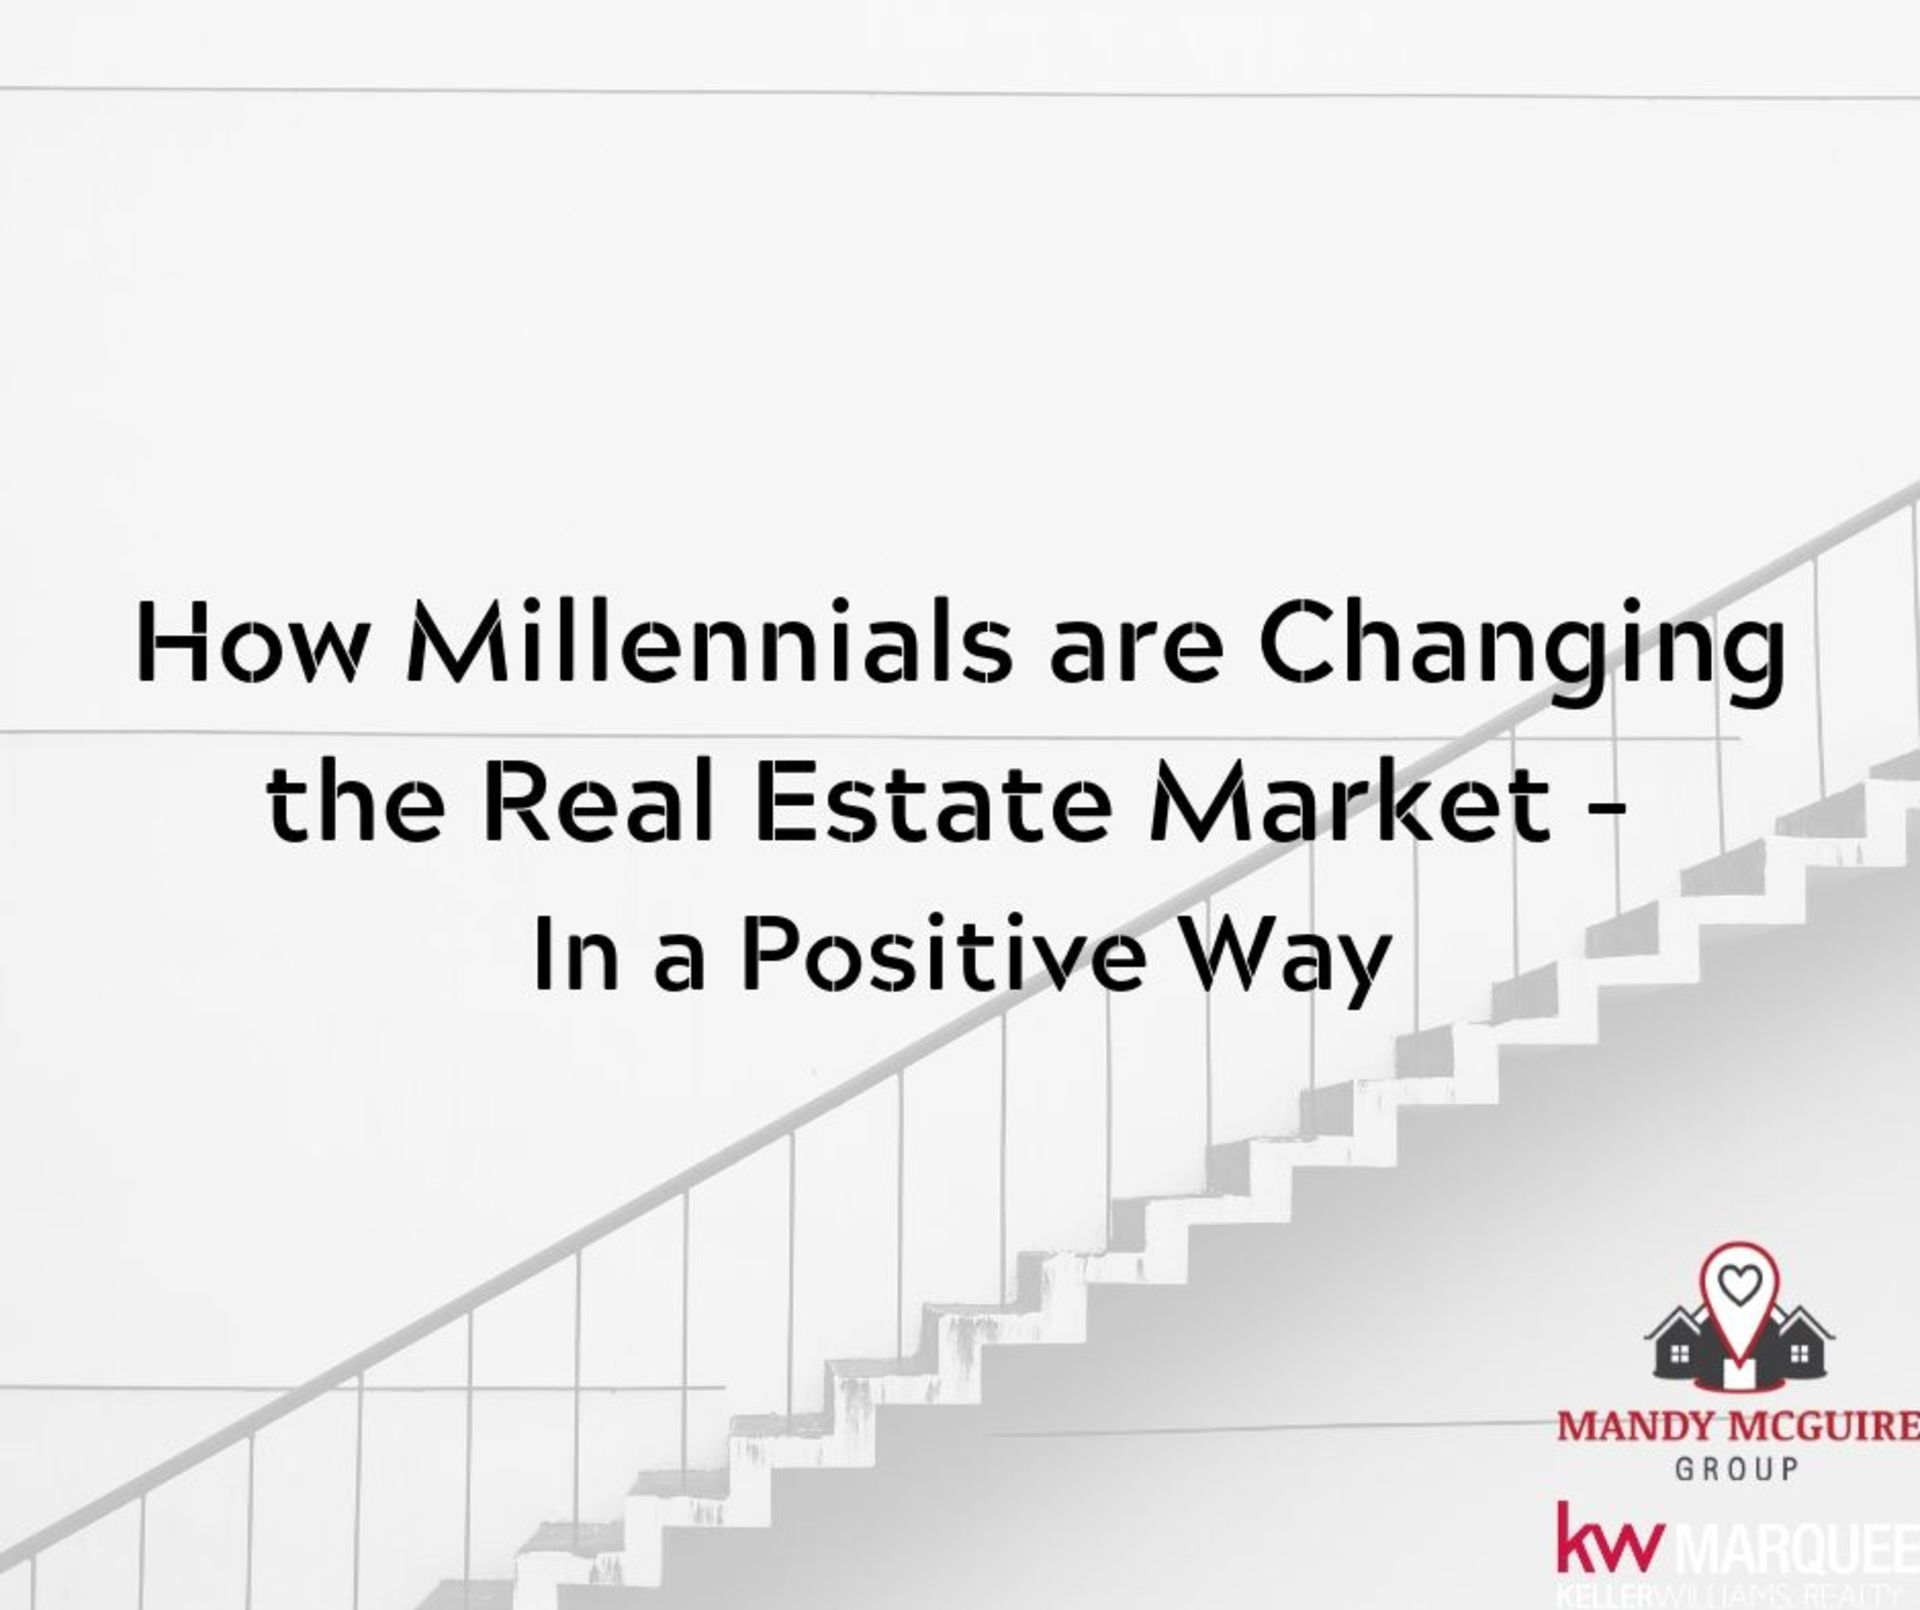 How Millennials are Changing the Real Estate Market – In a Positive Way